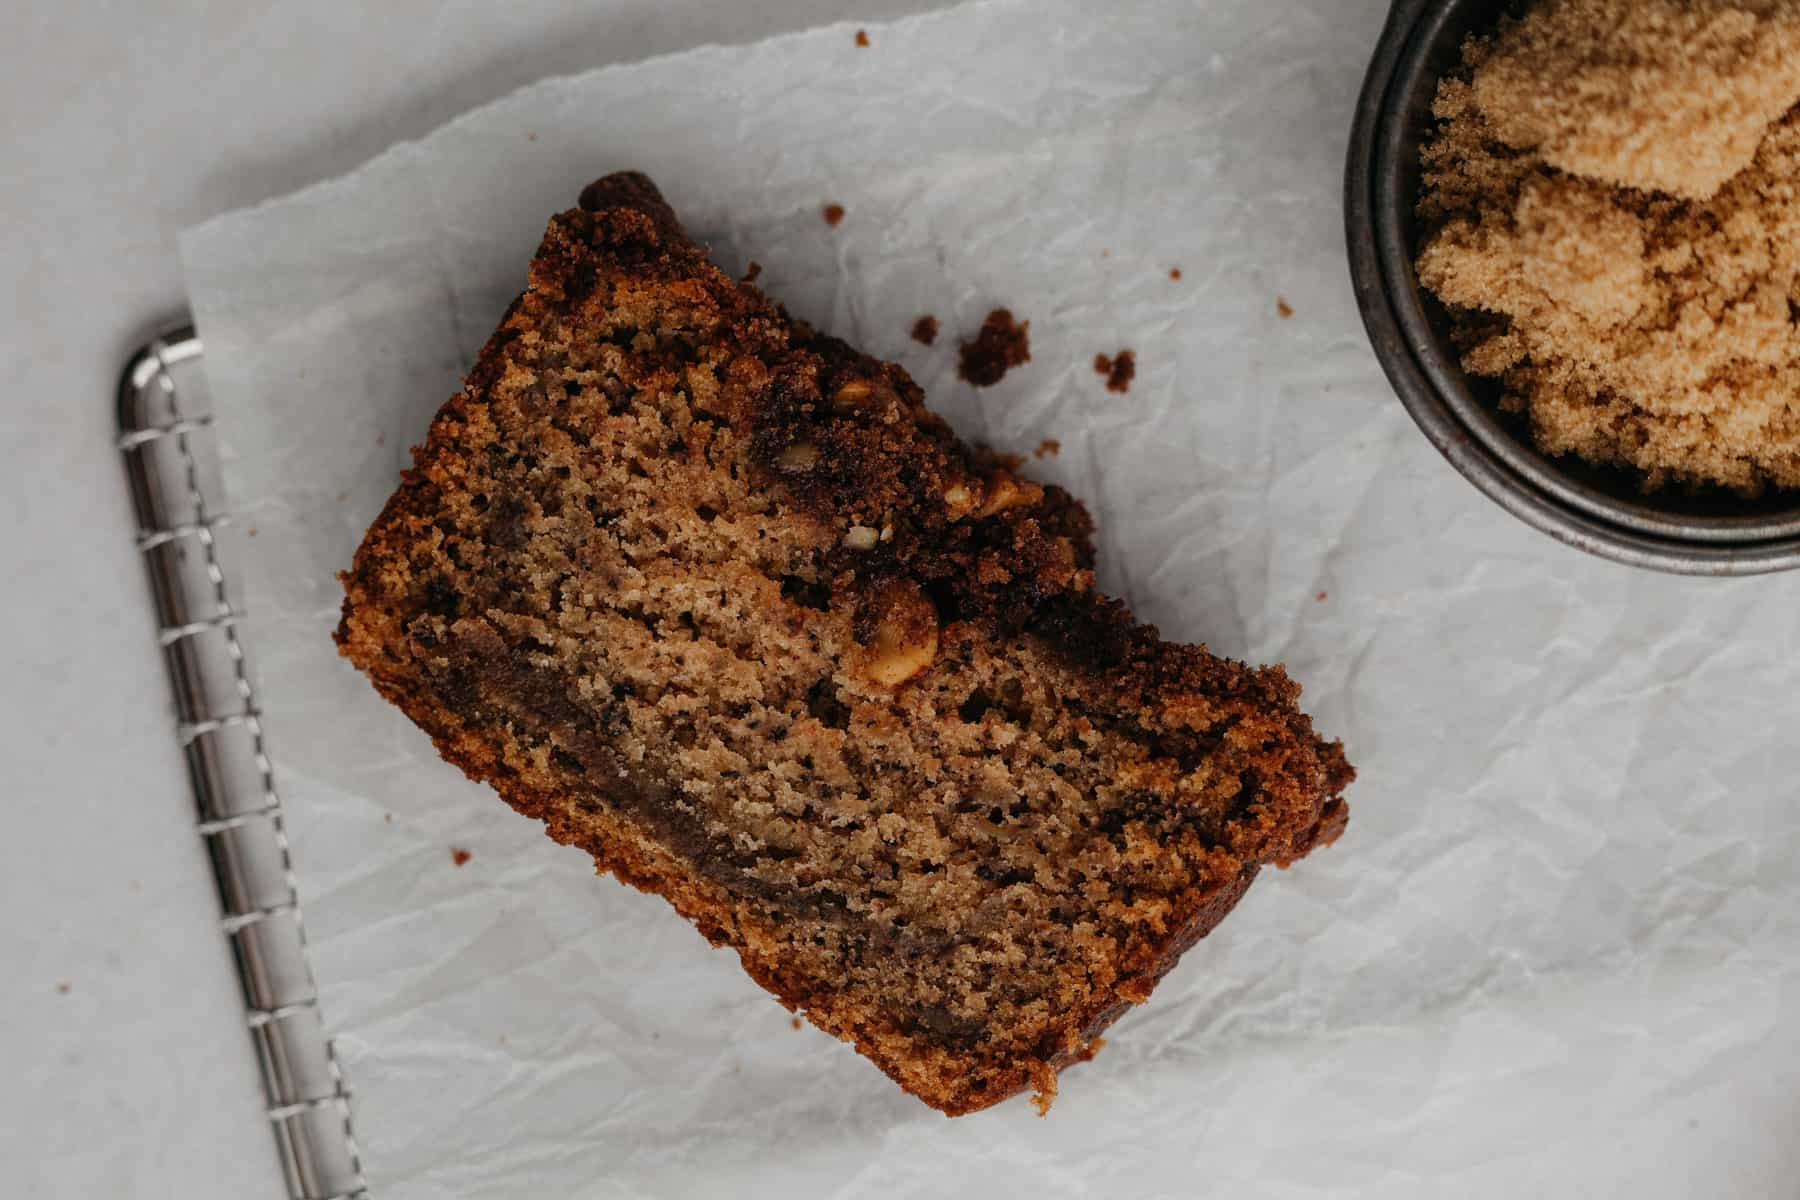 A slice of cinnamon crunch banana bread on parchment paper